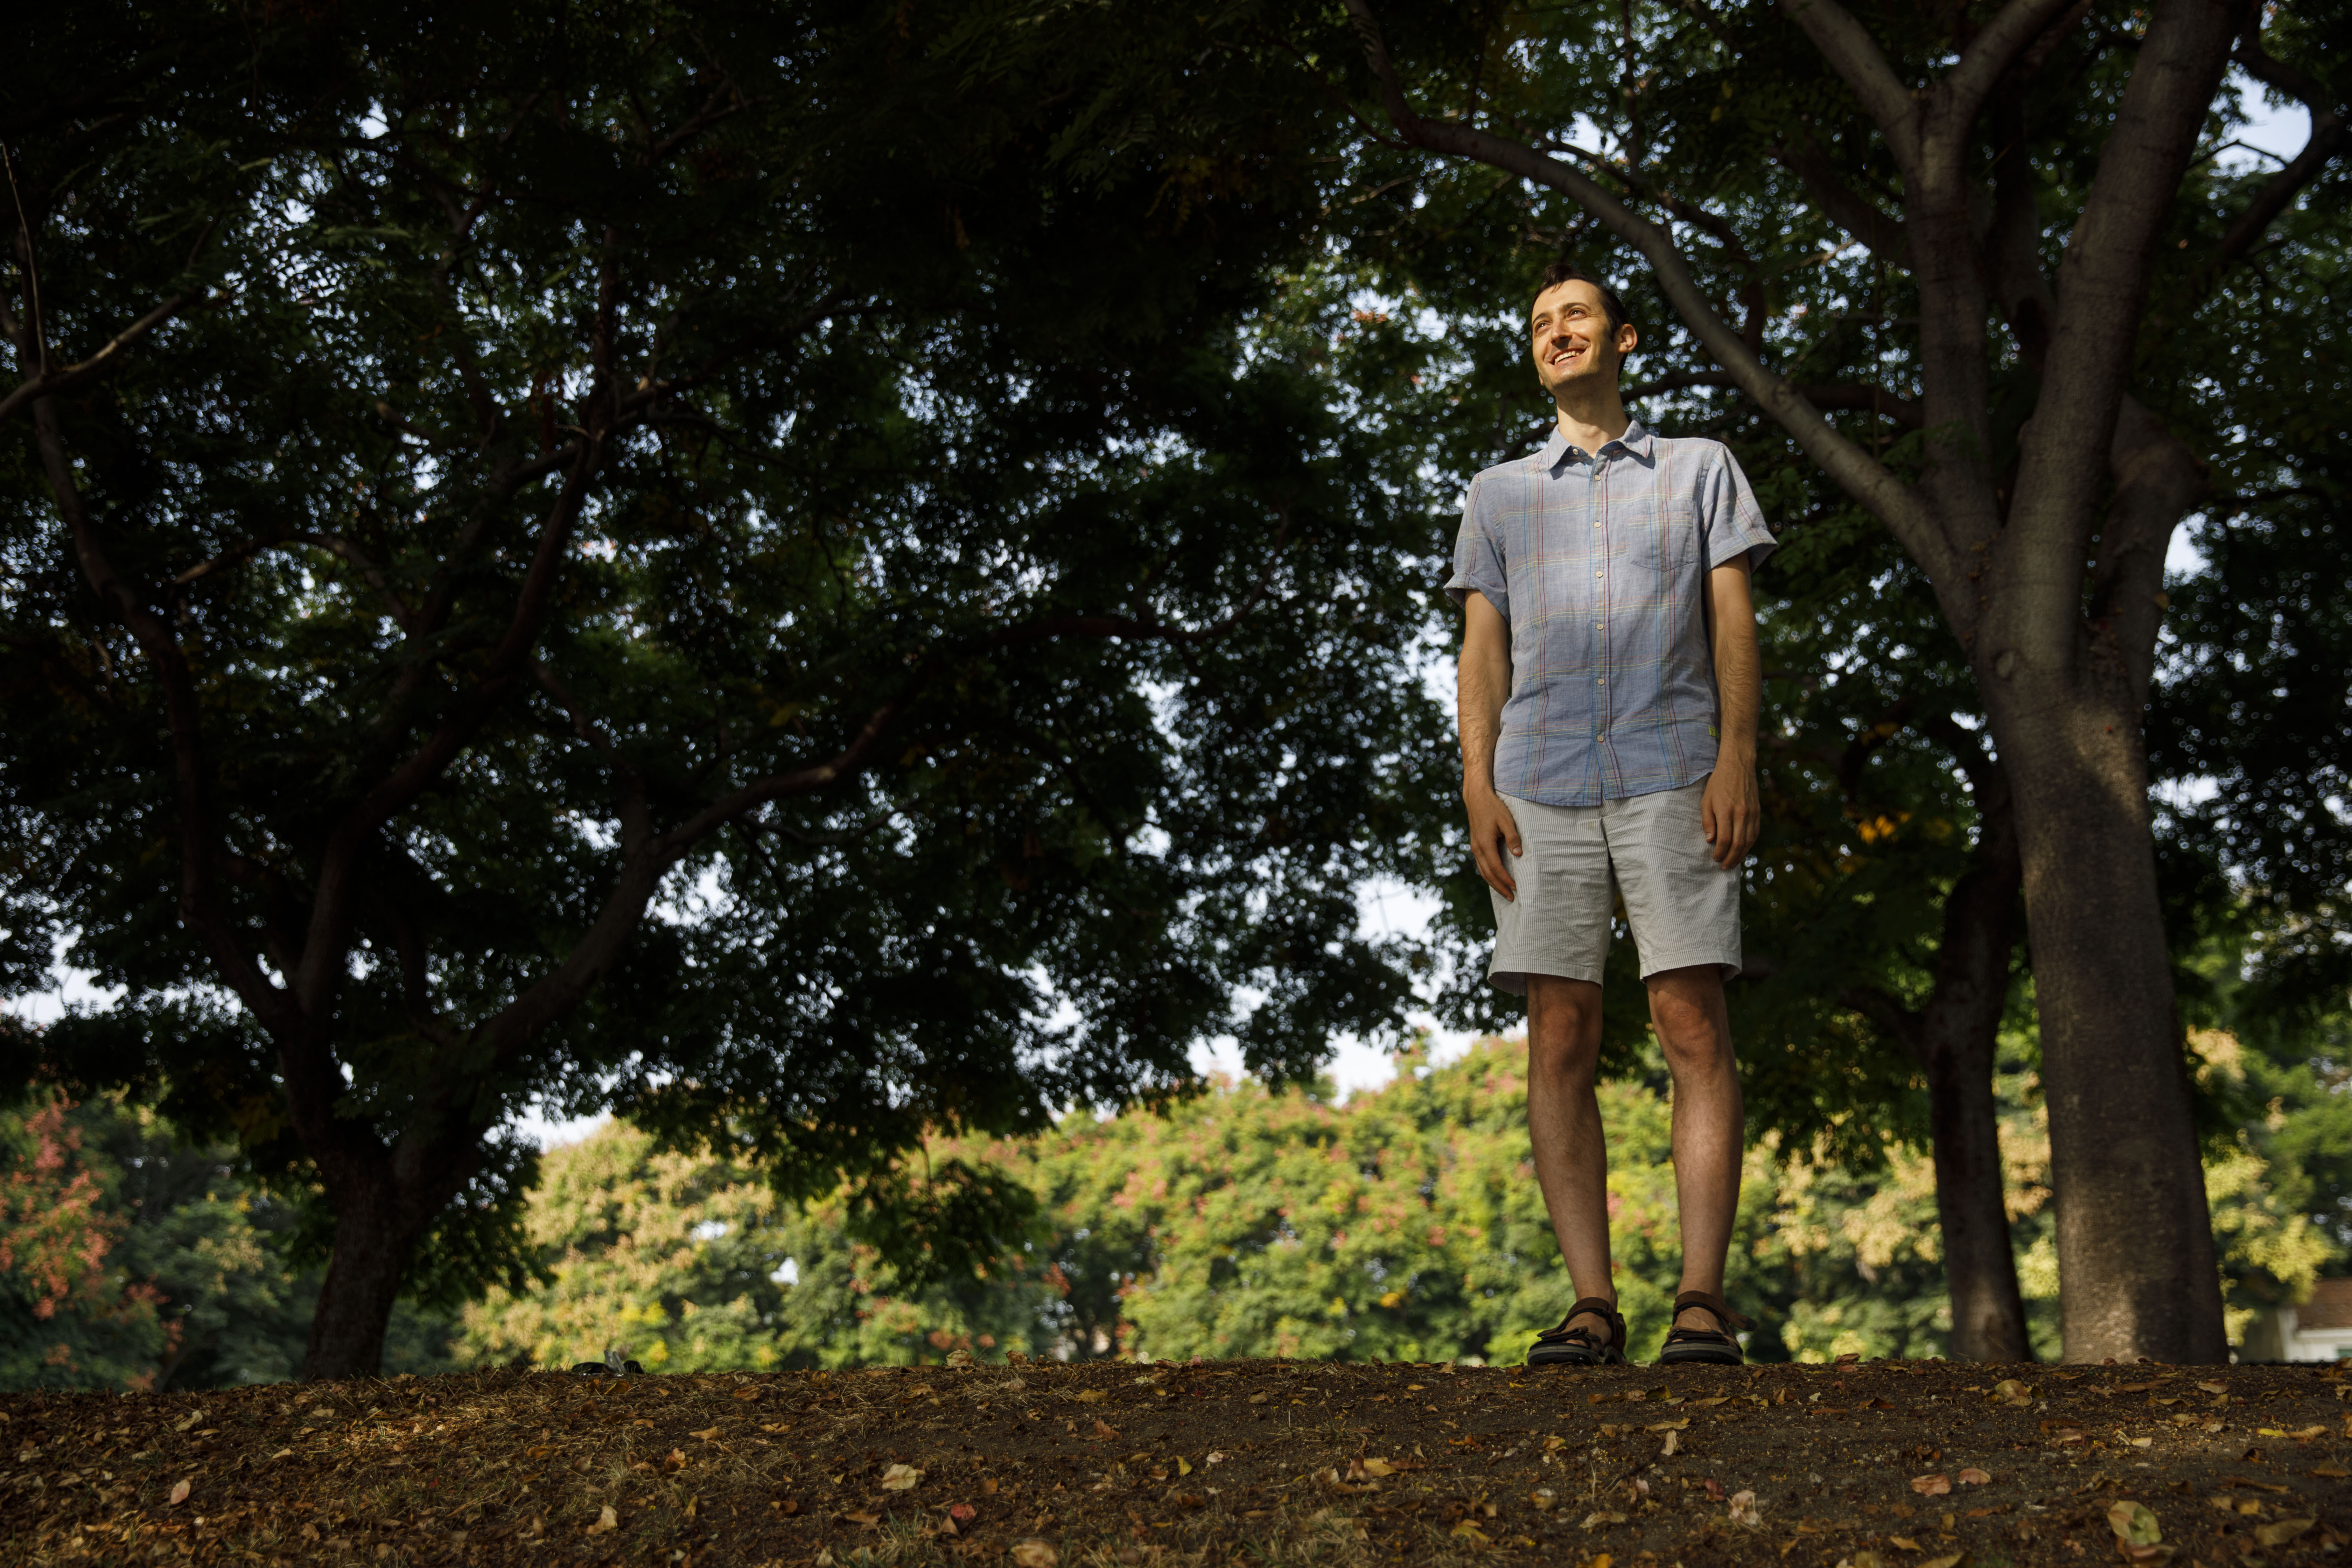 Joshua Krug, a religious studies scholar and author finishing his doctoral program, stands for a portrait in Beverly Hills, Calif., on Thursday, Sept. 17, 2020.